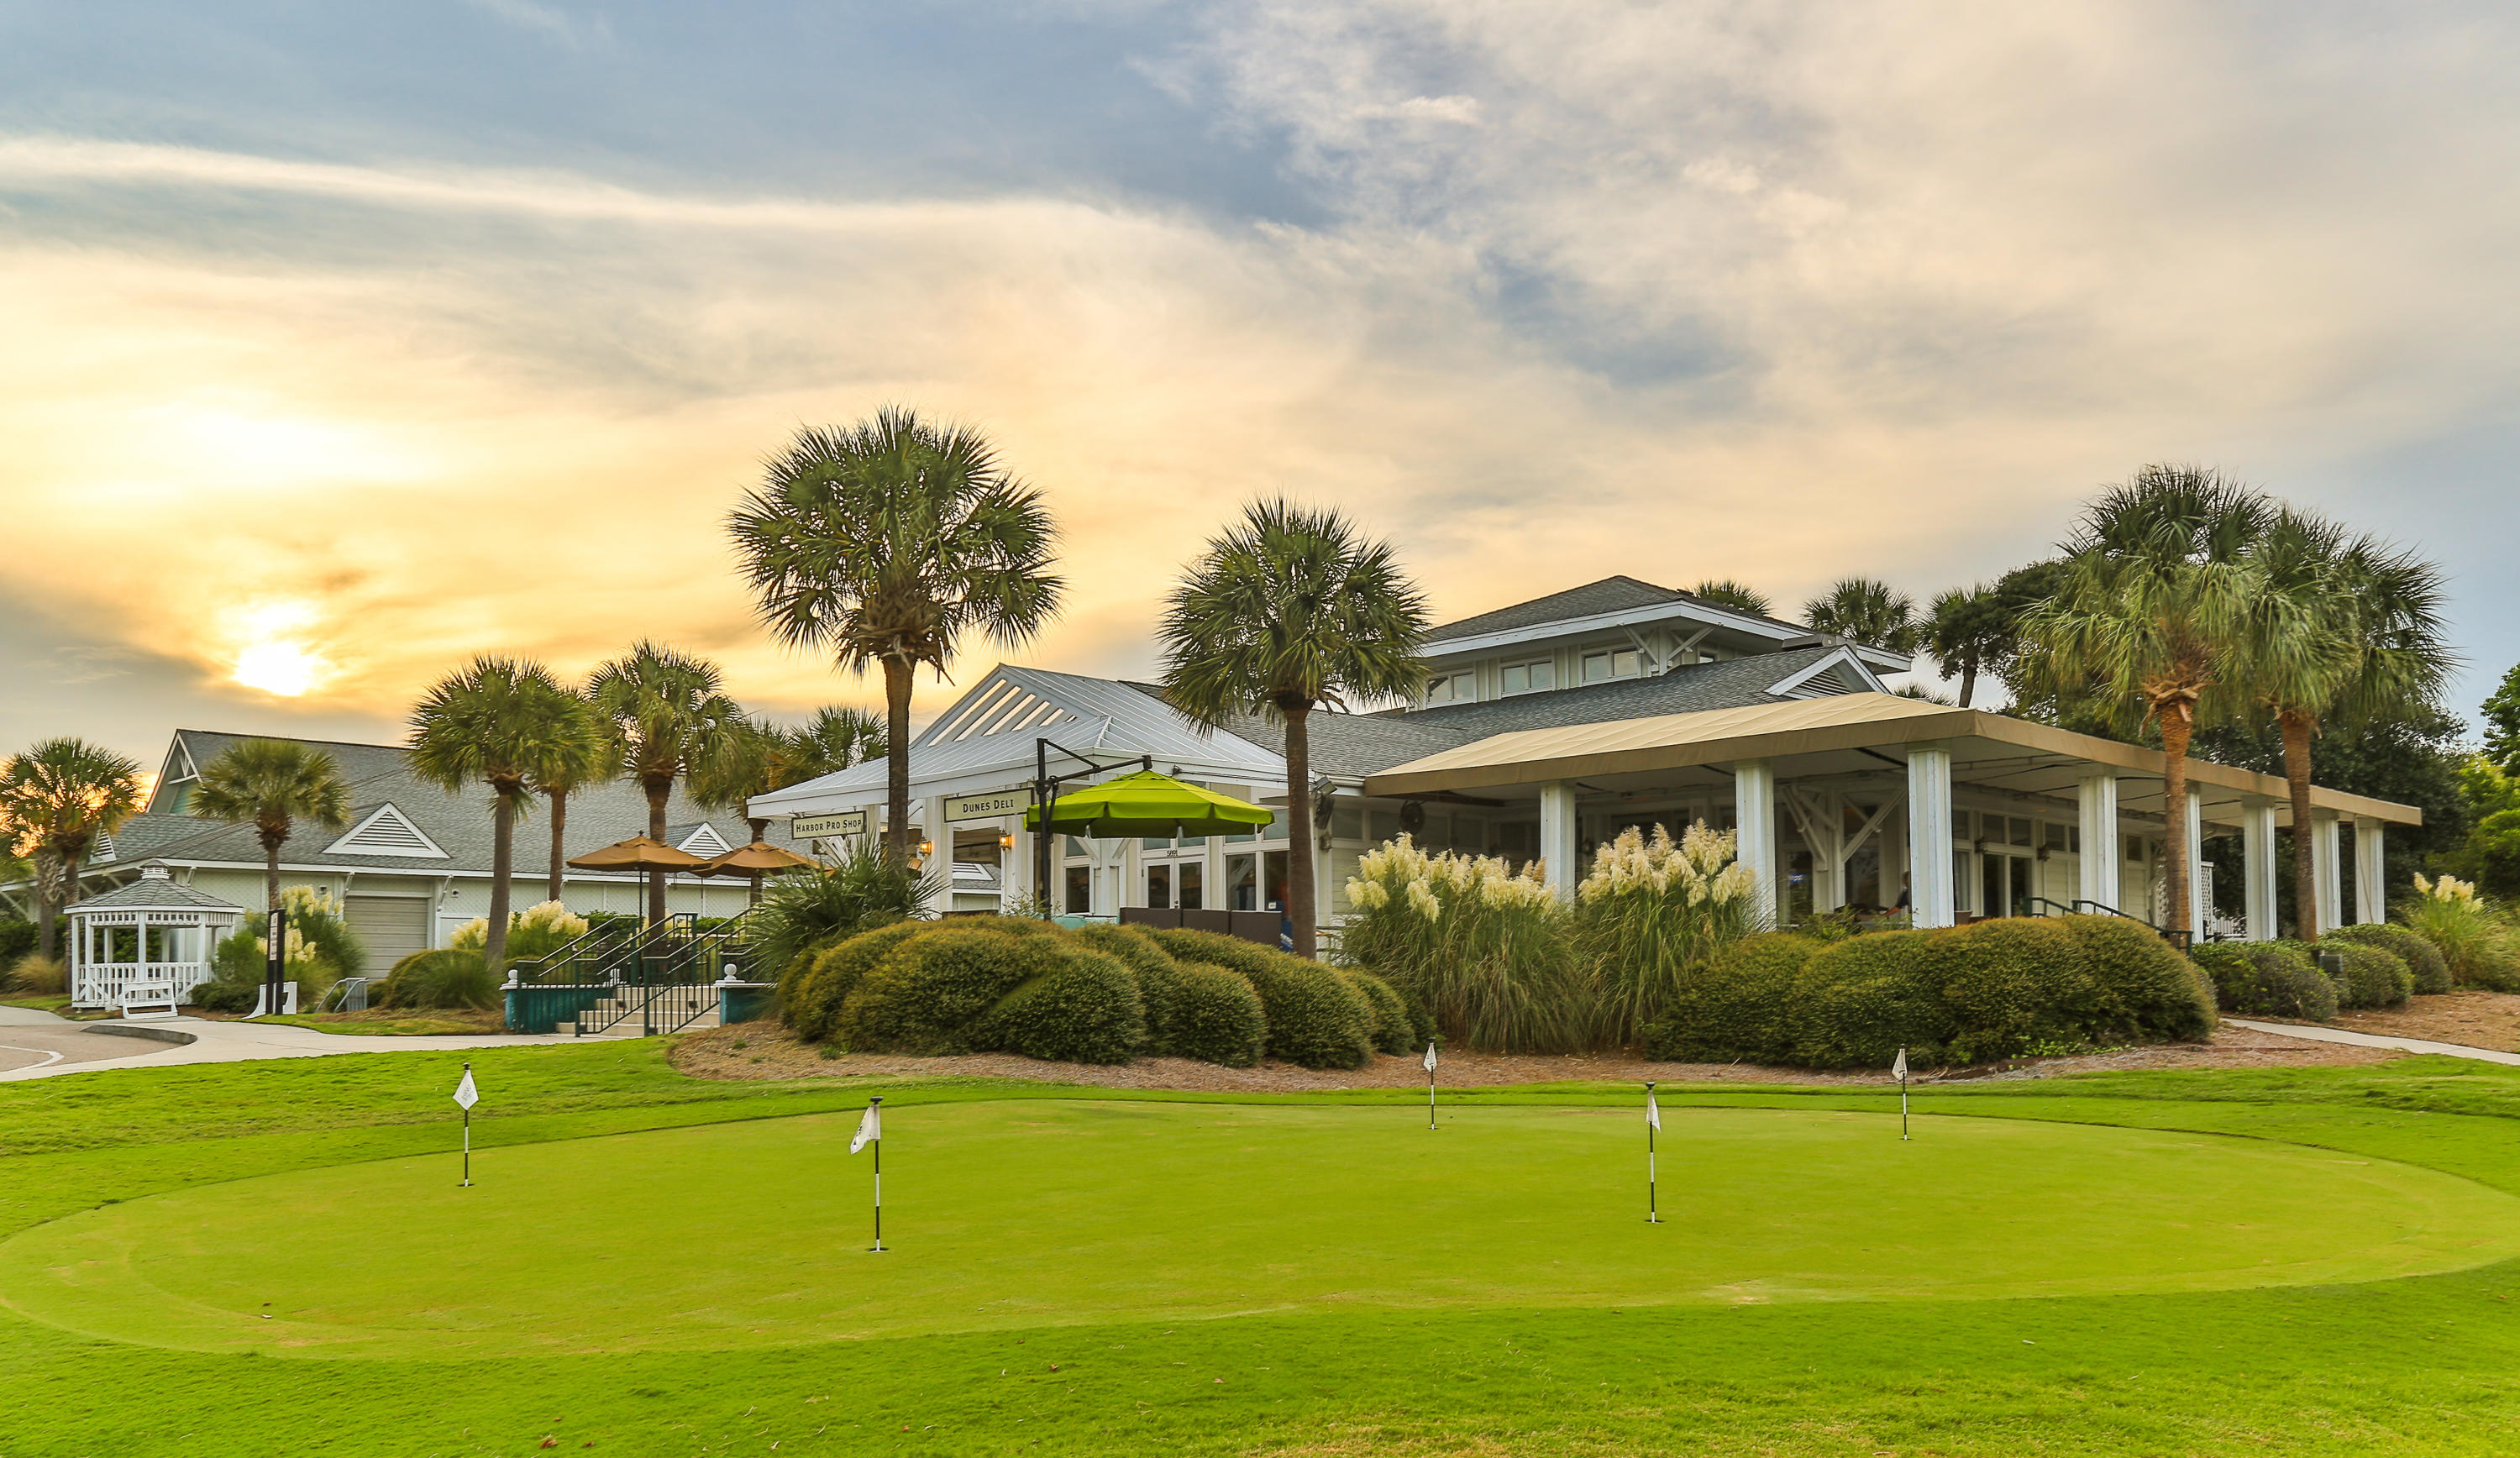 Wild Dunes Homes For Sale - 415/417-B The Village At Wild Dunes, Isle of Palms, SC - 34